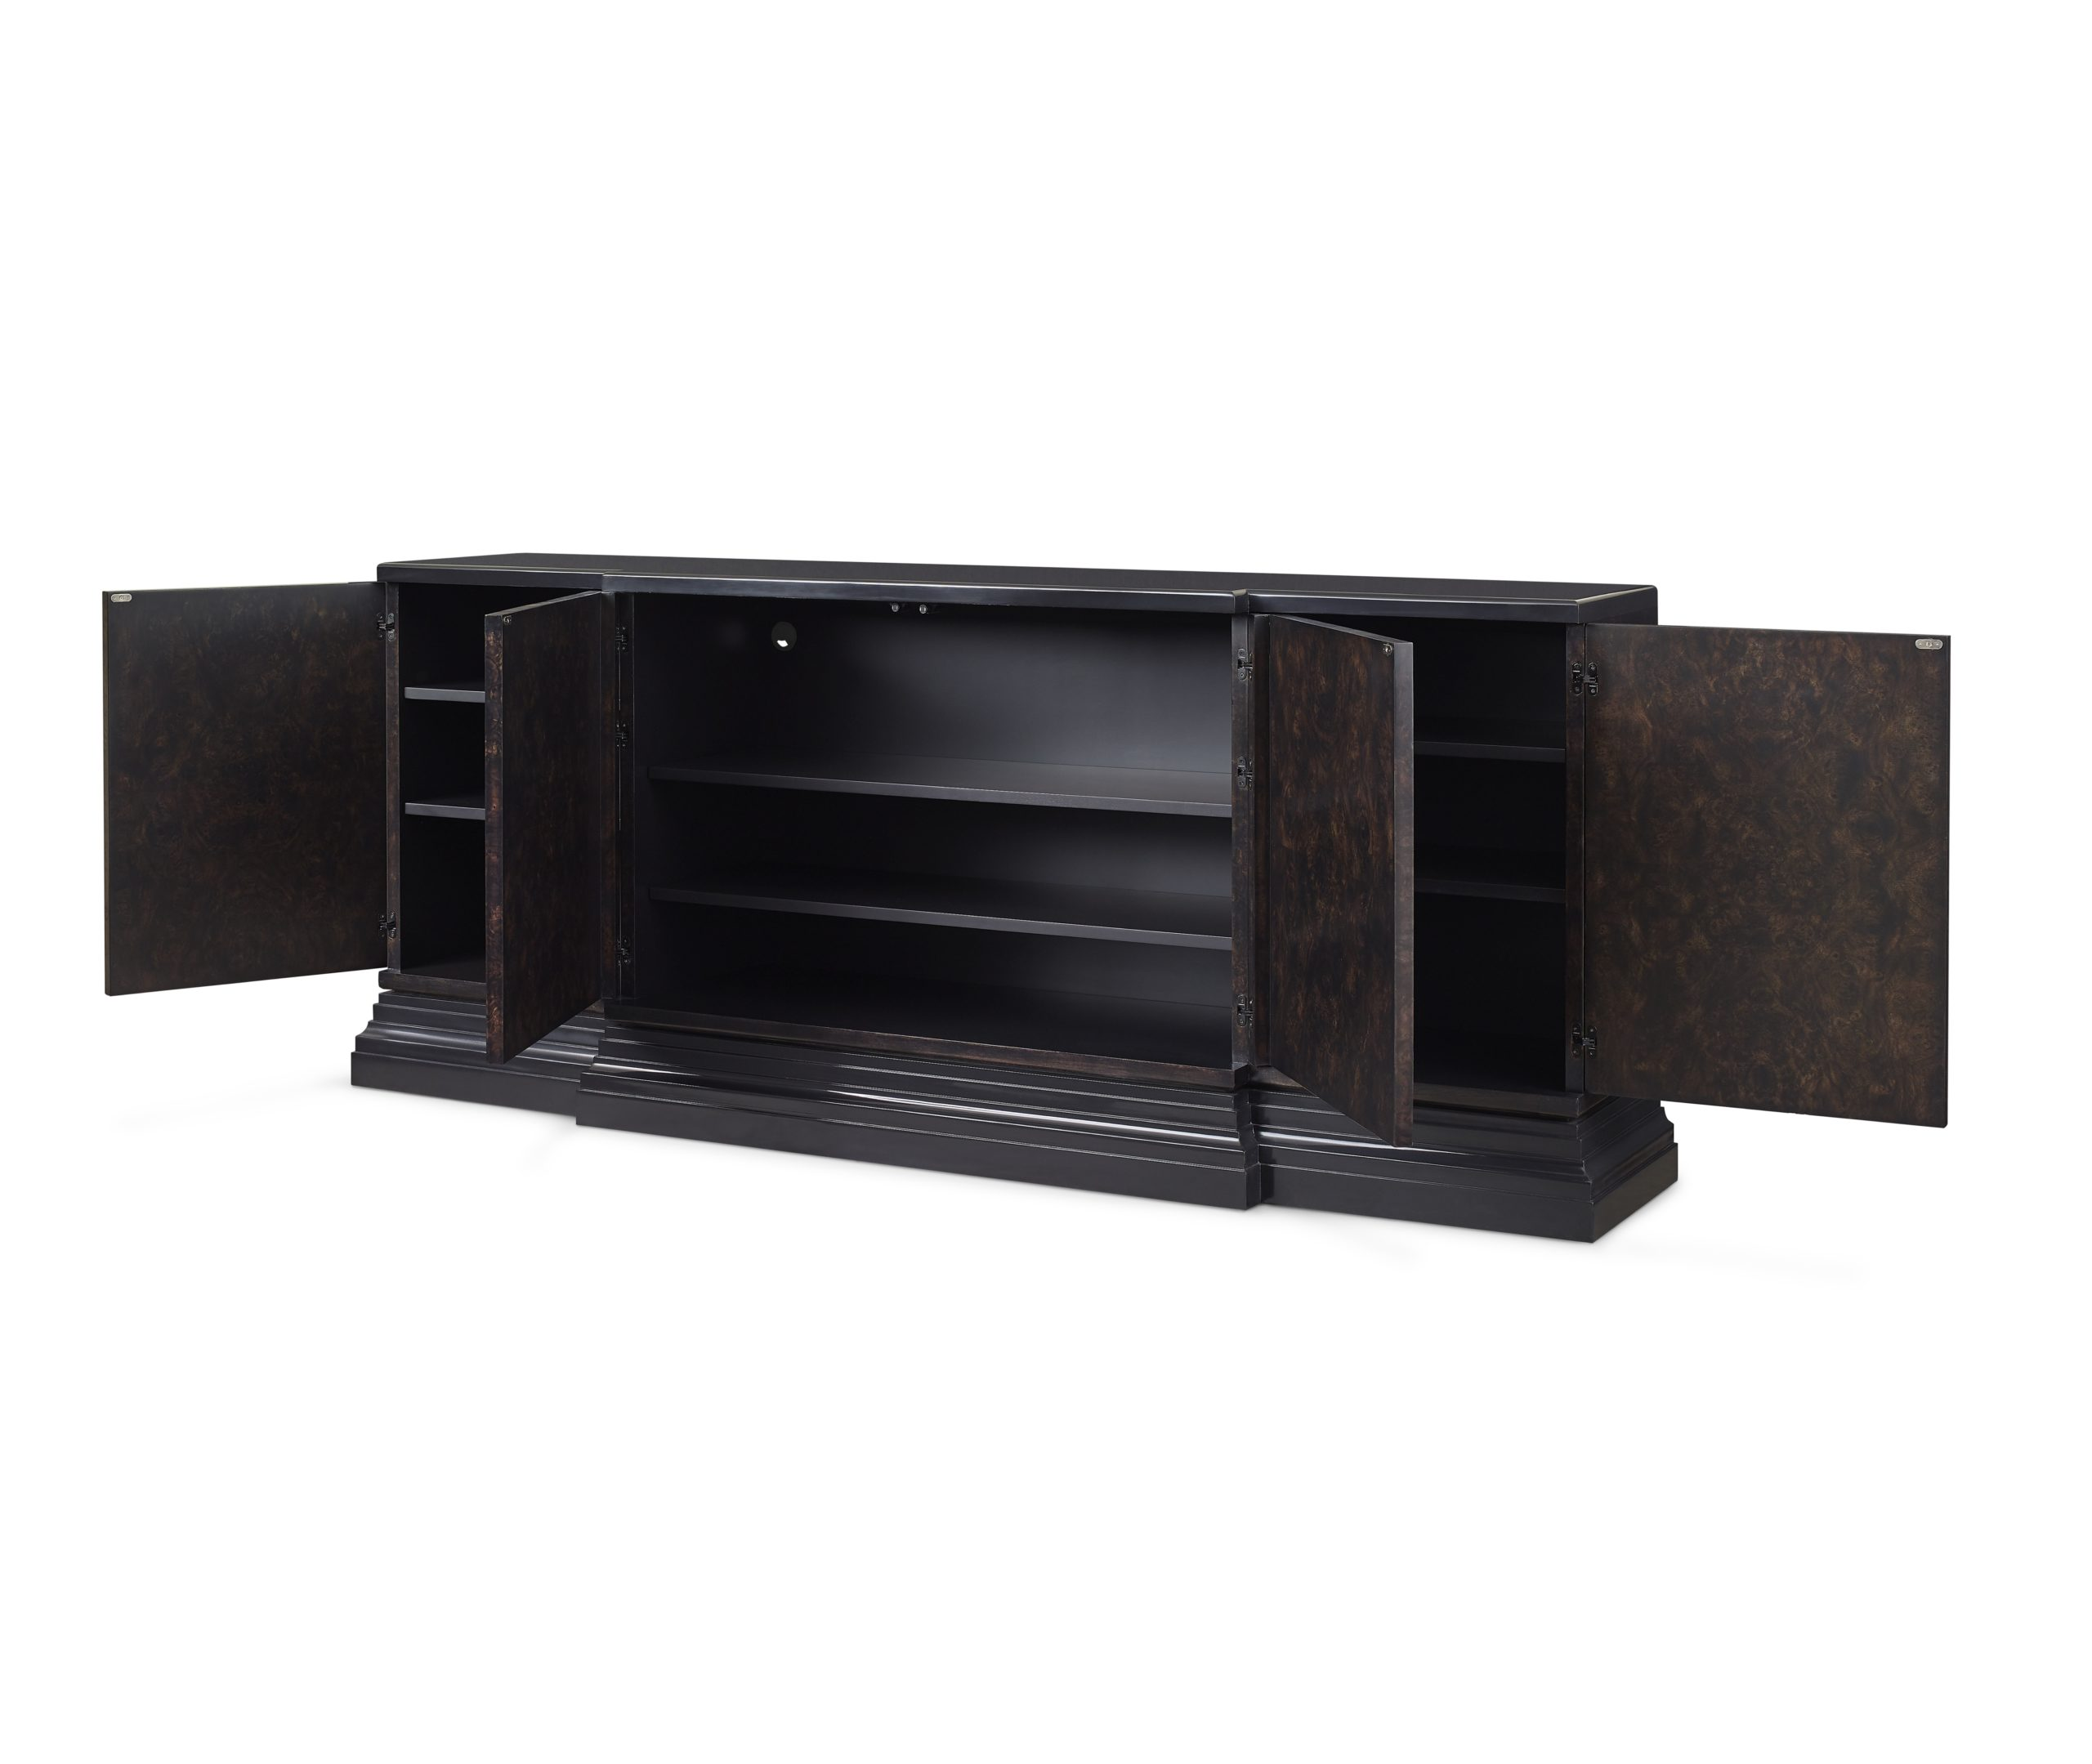 Baker_products_WNWN_maximus_credenza_BAA3030_OPEN-scaled-1